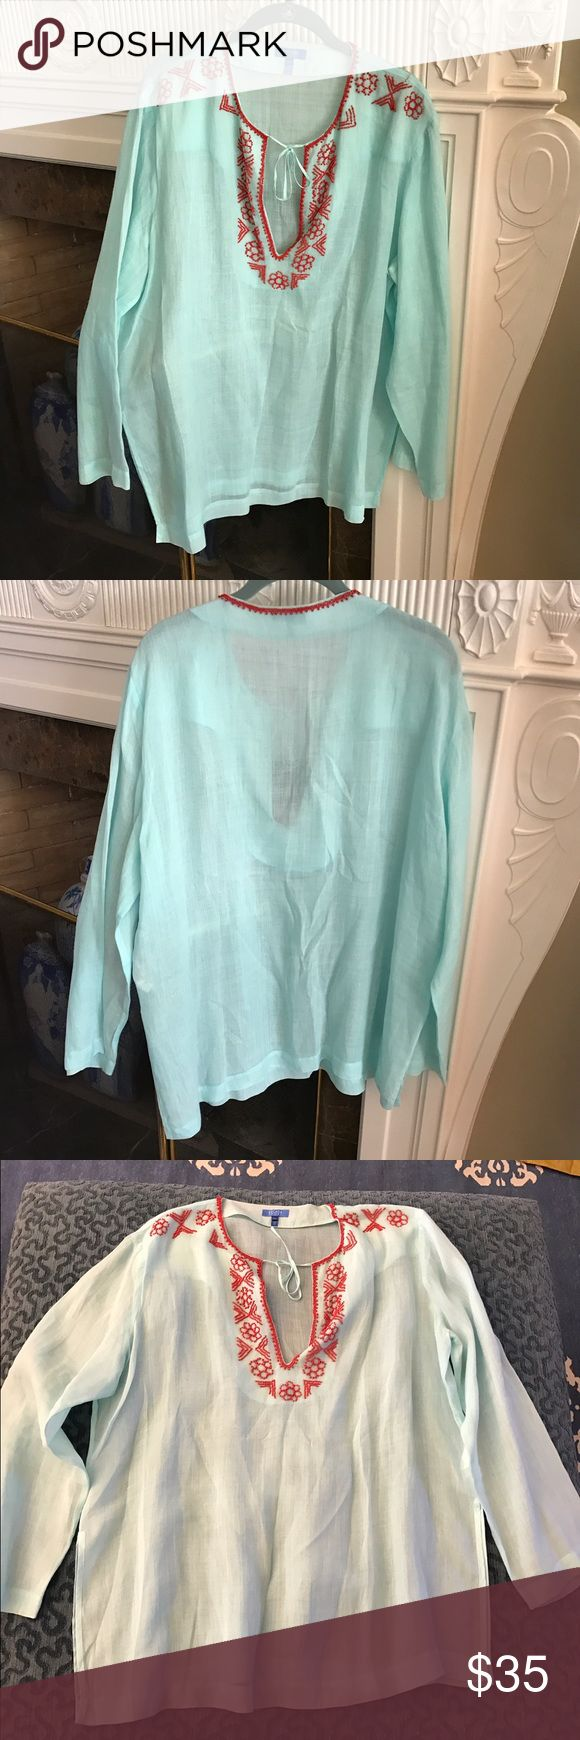 Escada Sport Beaded Cover Up Escada Sport V Neck Blouse. Long sleeve light blue tunic with red beading details and slits on both sides. 100% Ramie. Escada Tops